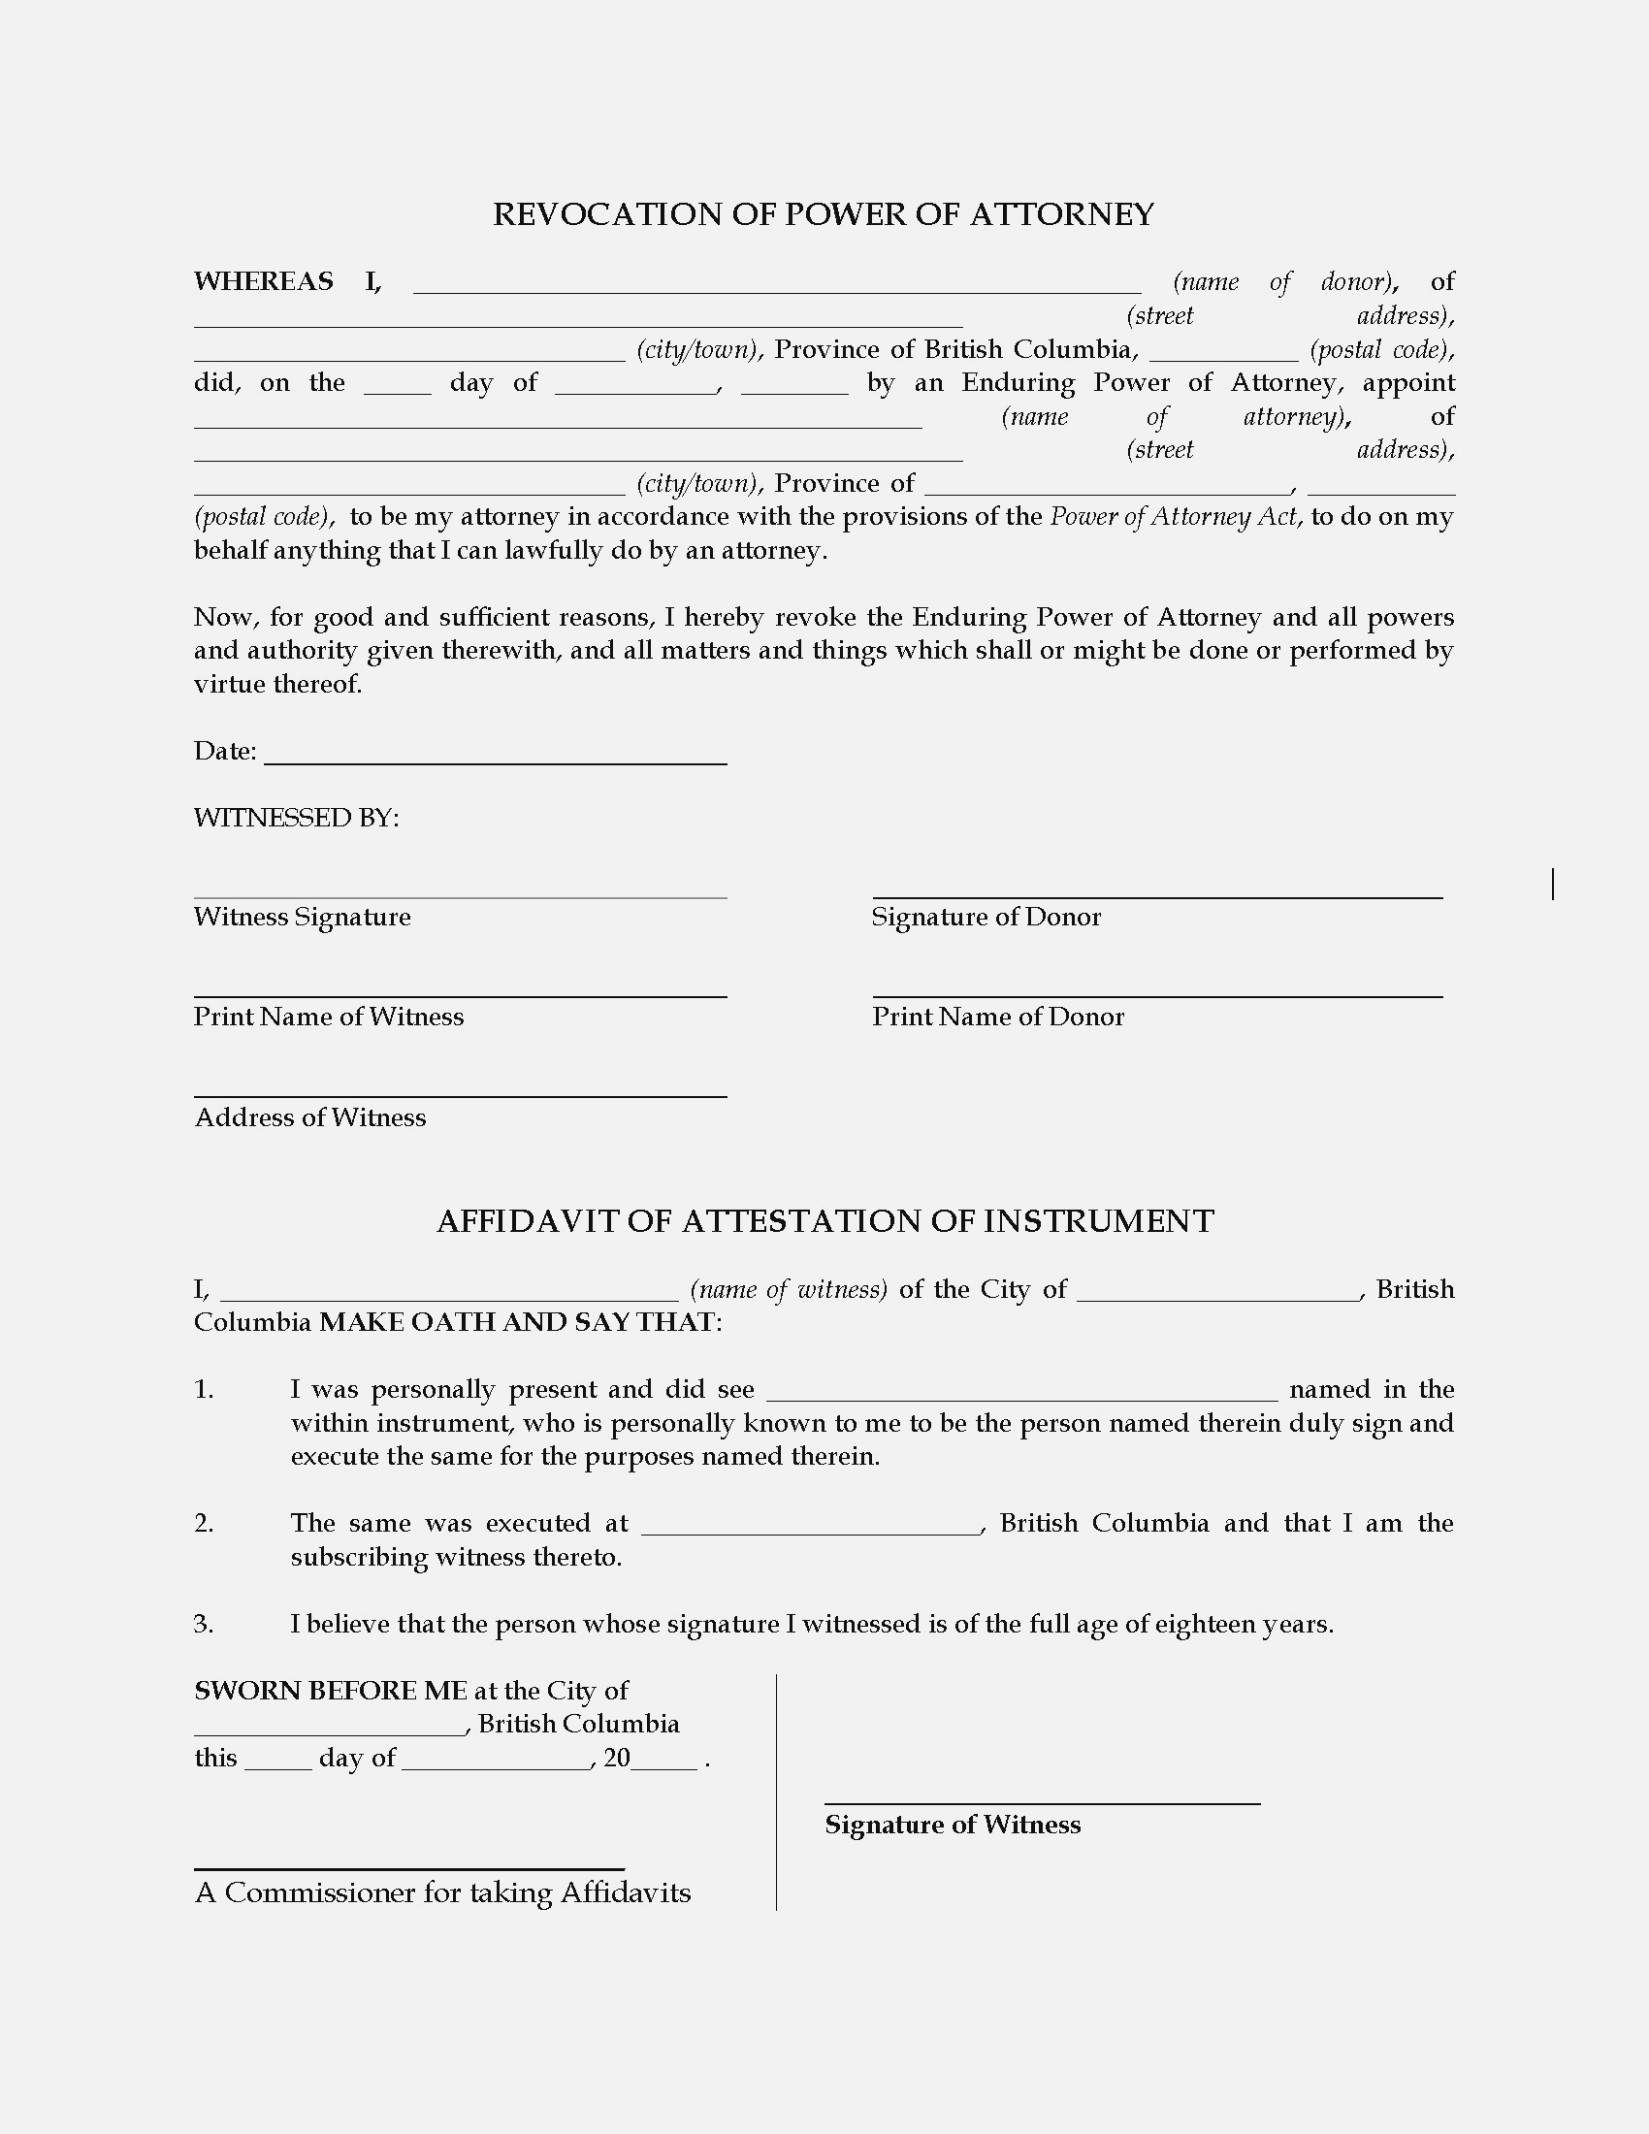 Template: Revocation Of Power Of Attorney – Free Printable - Free Printable Revocation Of Power Of Attorney Form